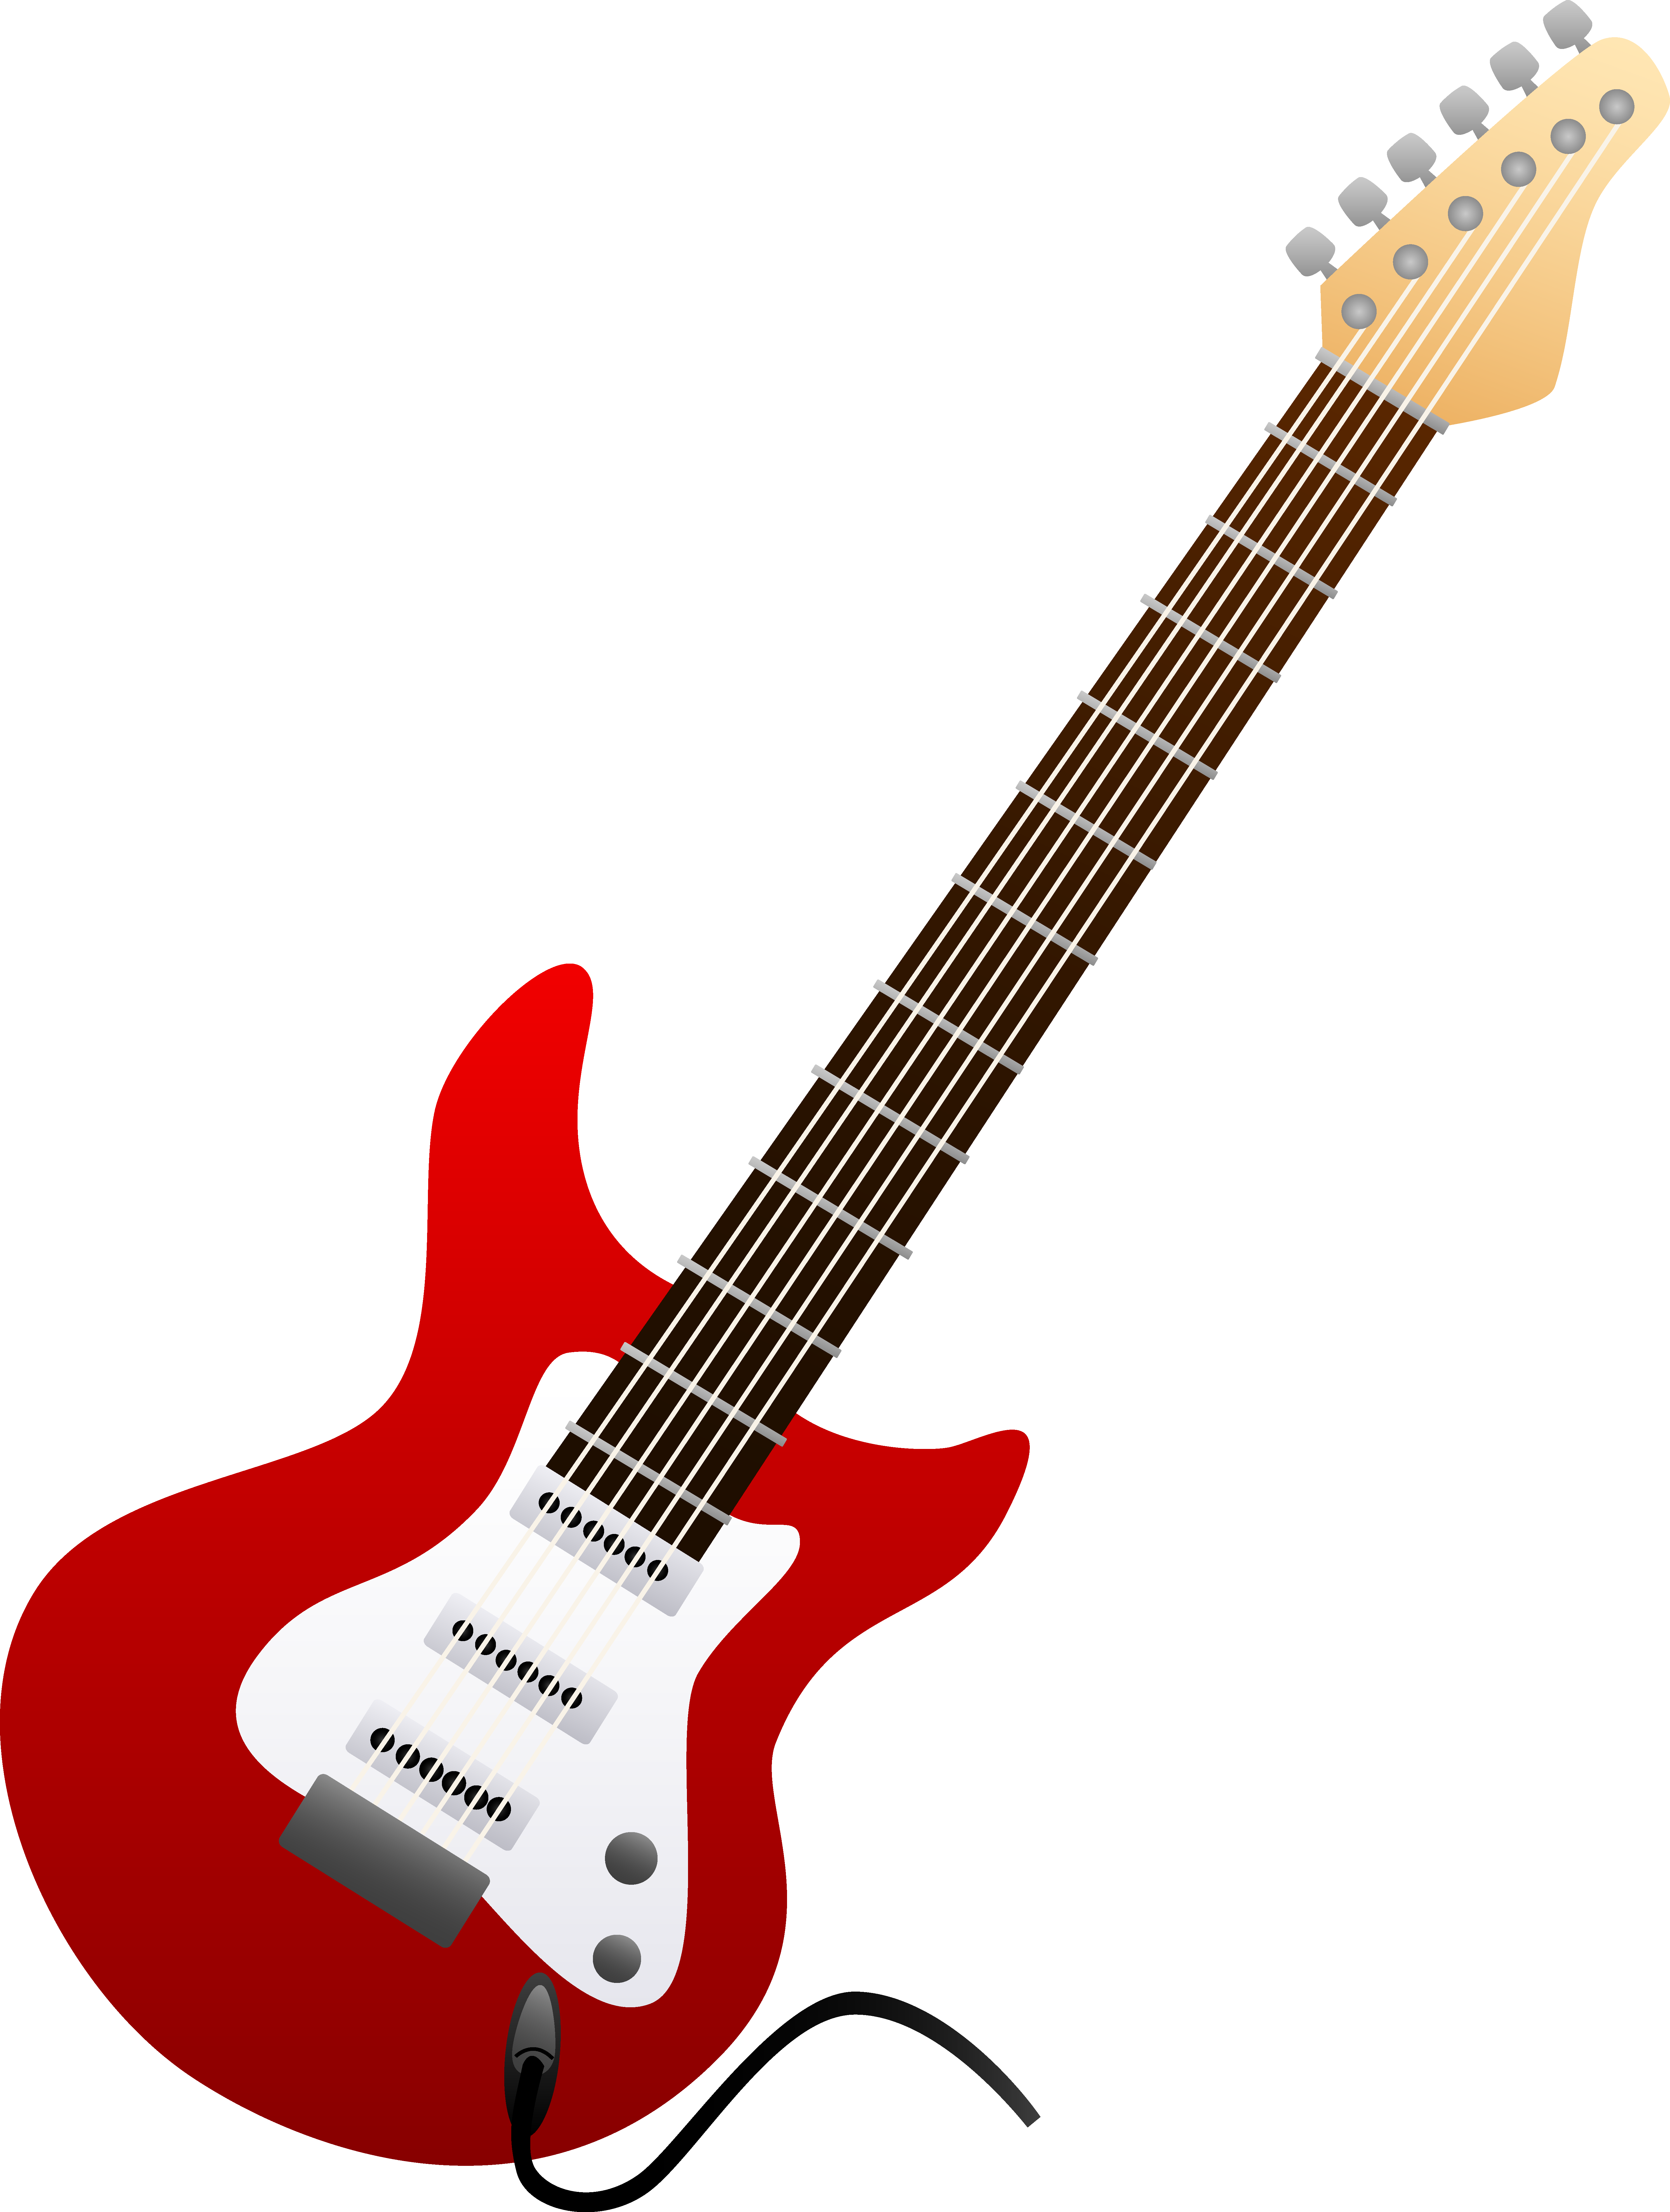 clipart guitar red